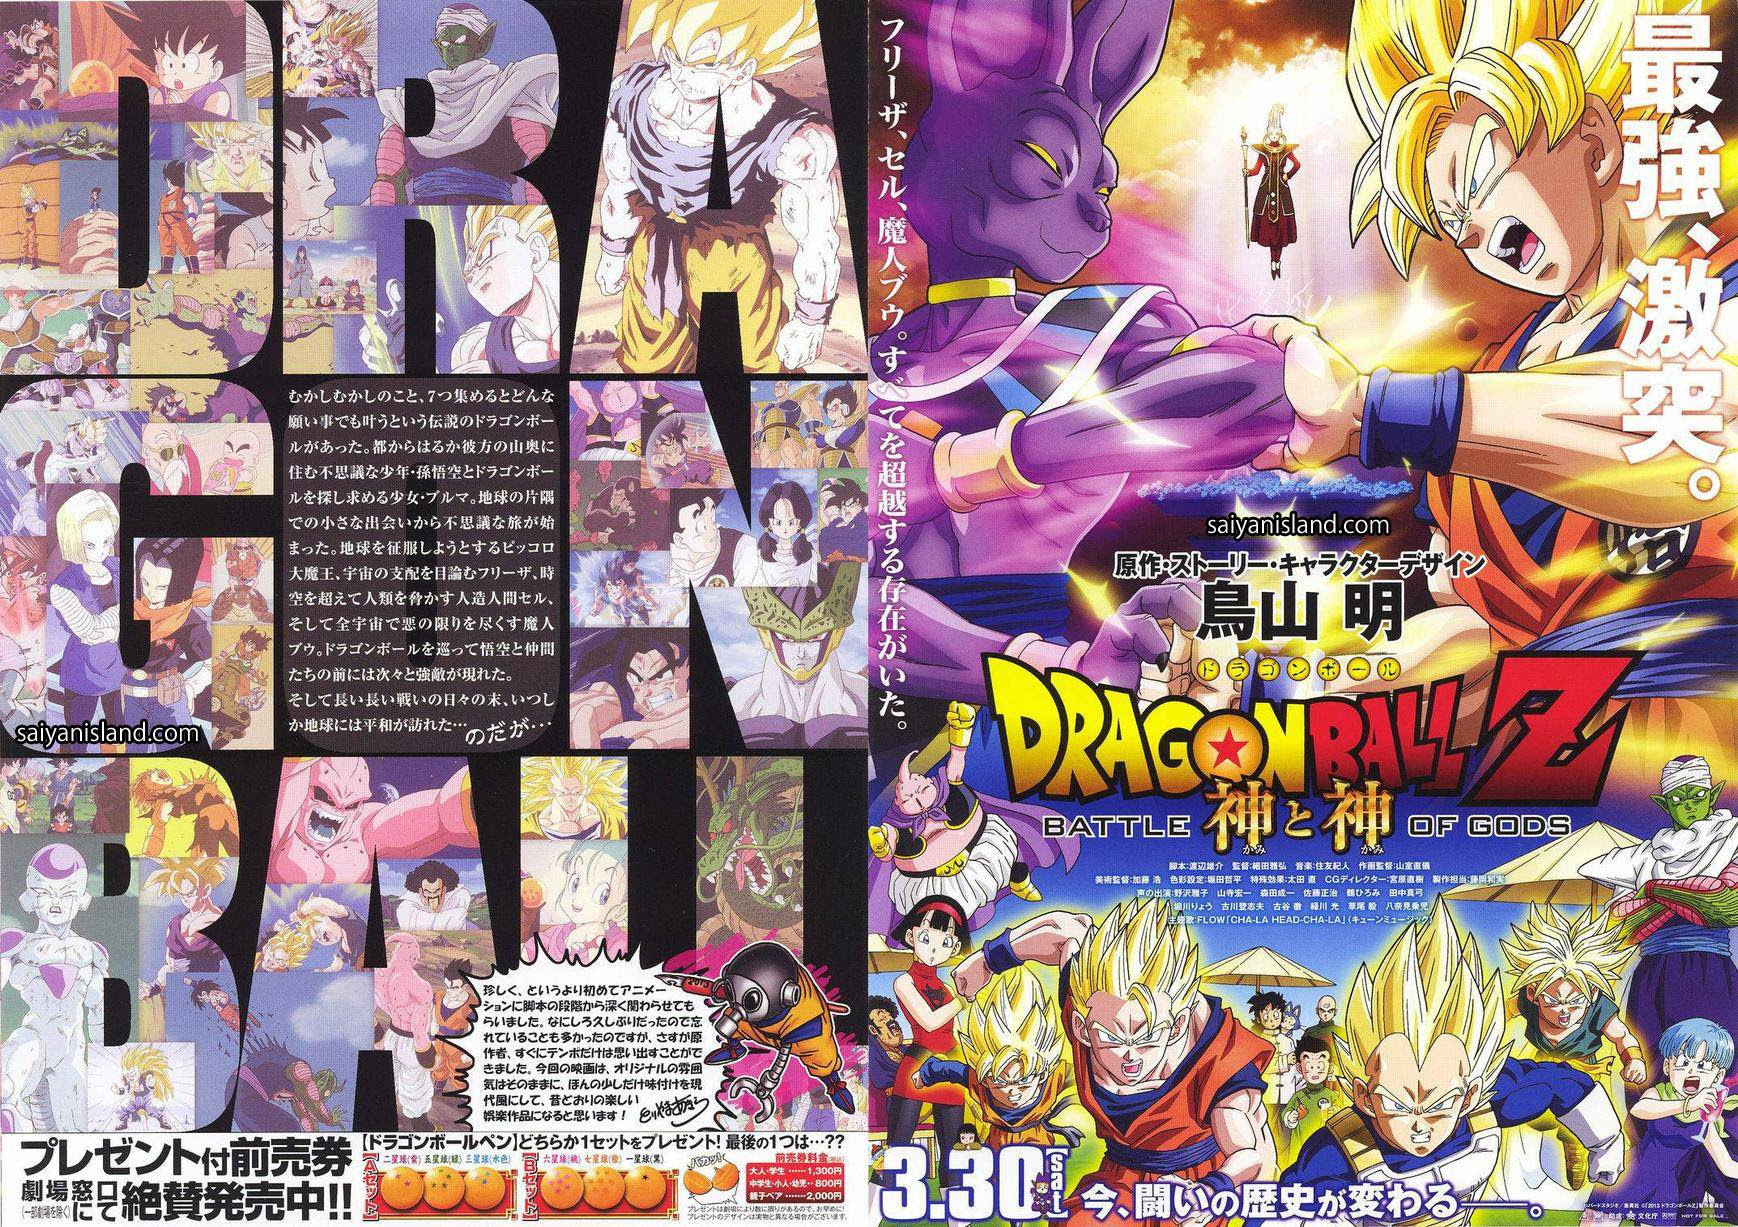 Dragon Ball Z: A batalha dos Deuses (Dragon Ball Z Battle of Gods) Torrent